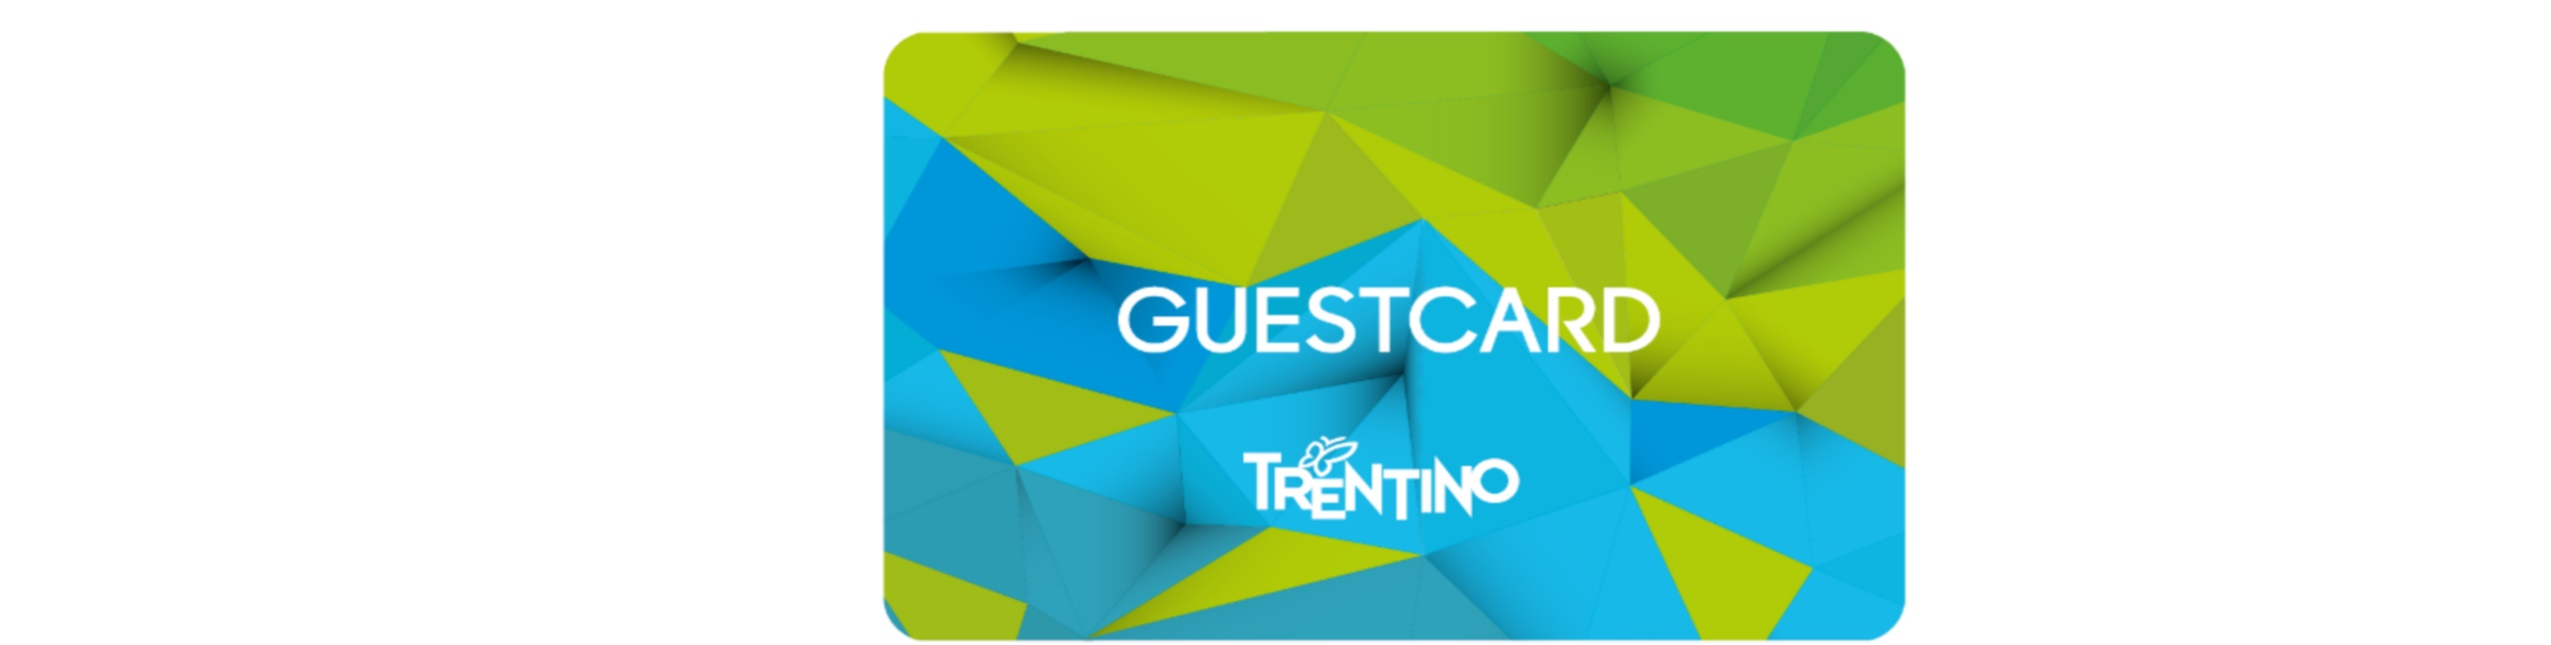 Trentino-Guest-Card Hotel Grizzly Folgaria